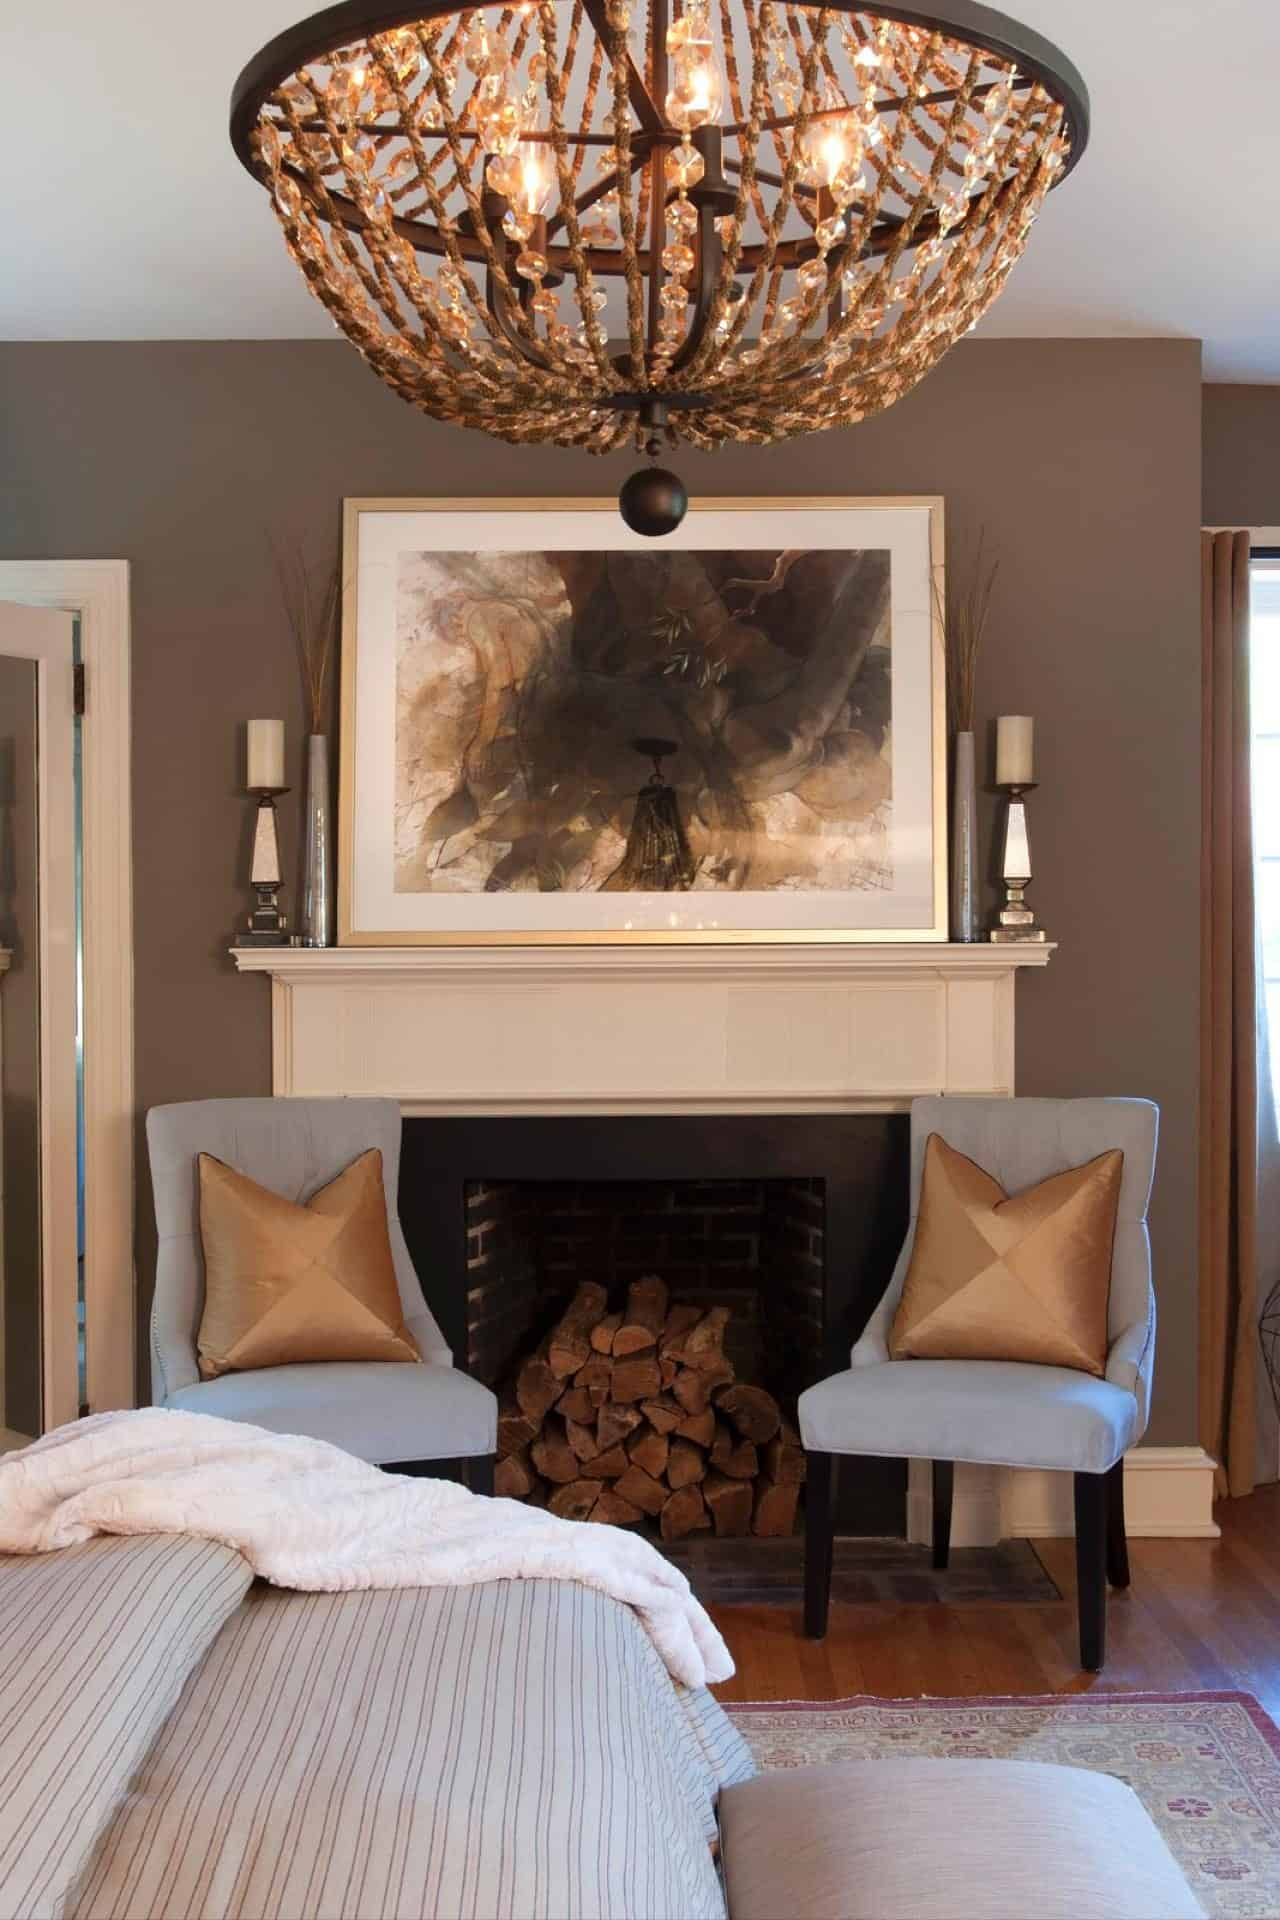 chandeliers-for-bedroom-traditional-wall-sconces-exterior-sconces-2-light-wall-sconce-modern-wall-light-fixtures